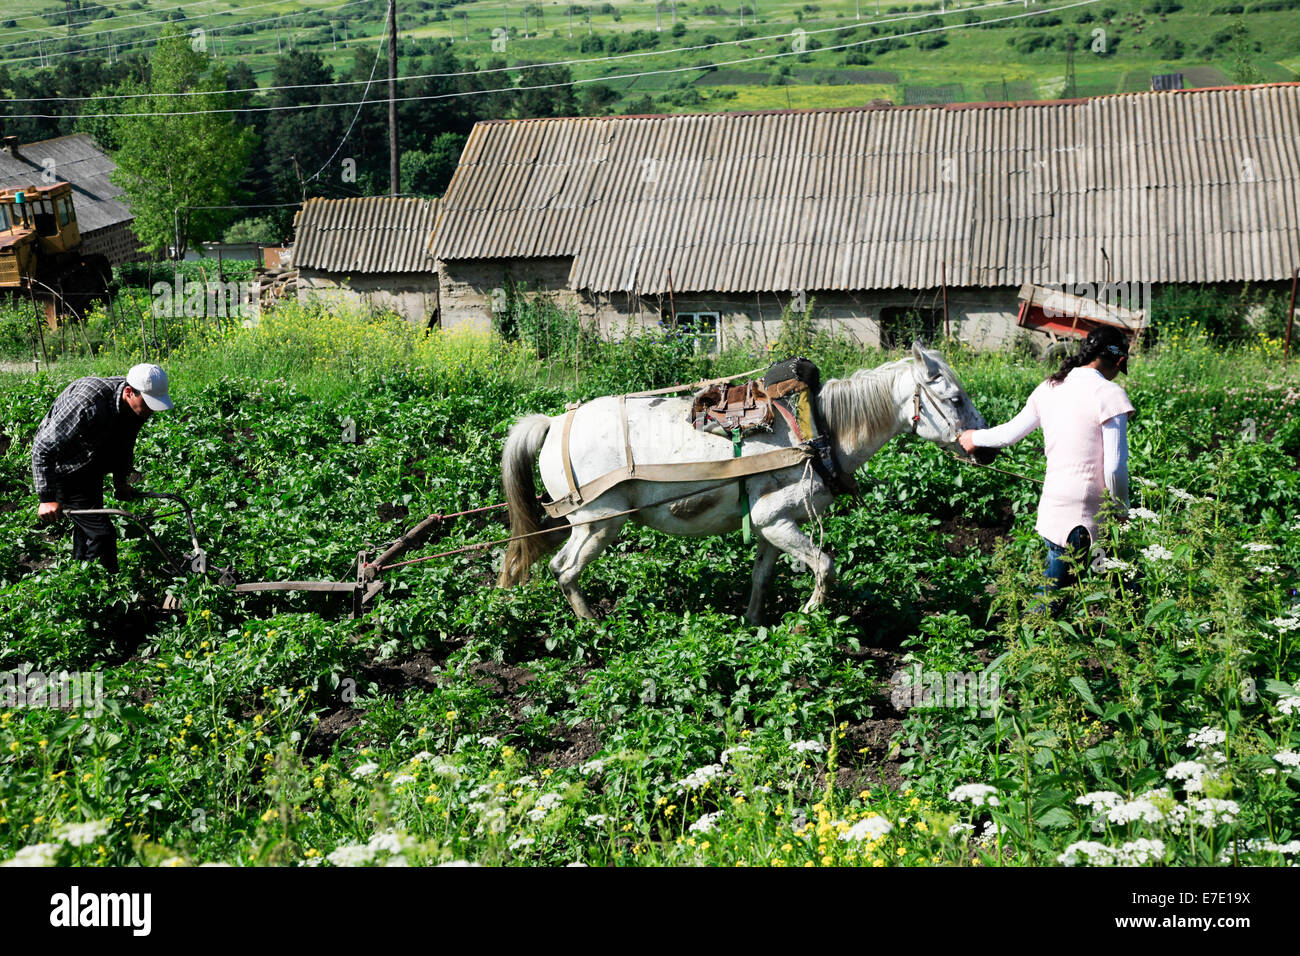 Farmers plough their field with a horse drawn hand plough. Photographed in Armenia - Stock Image